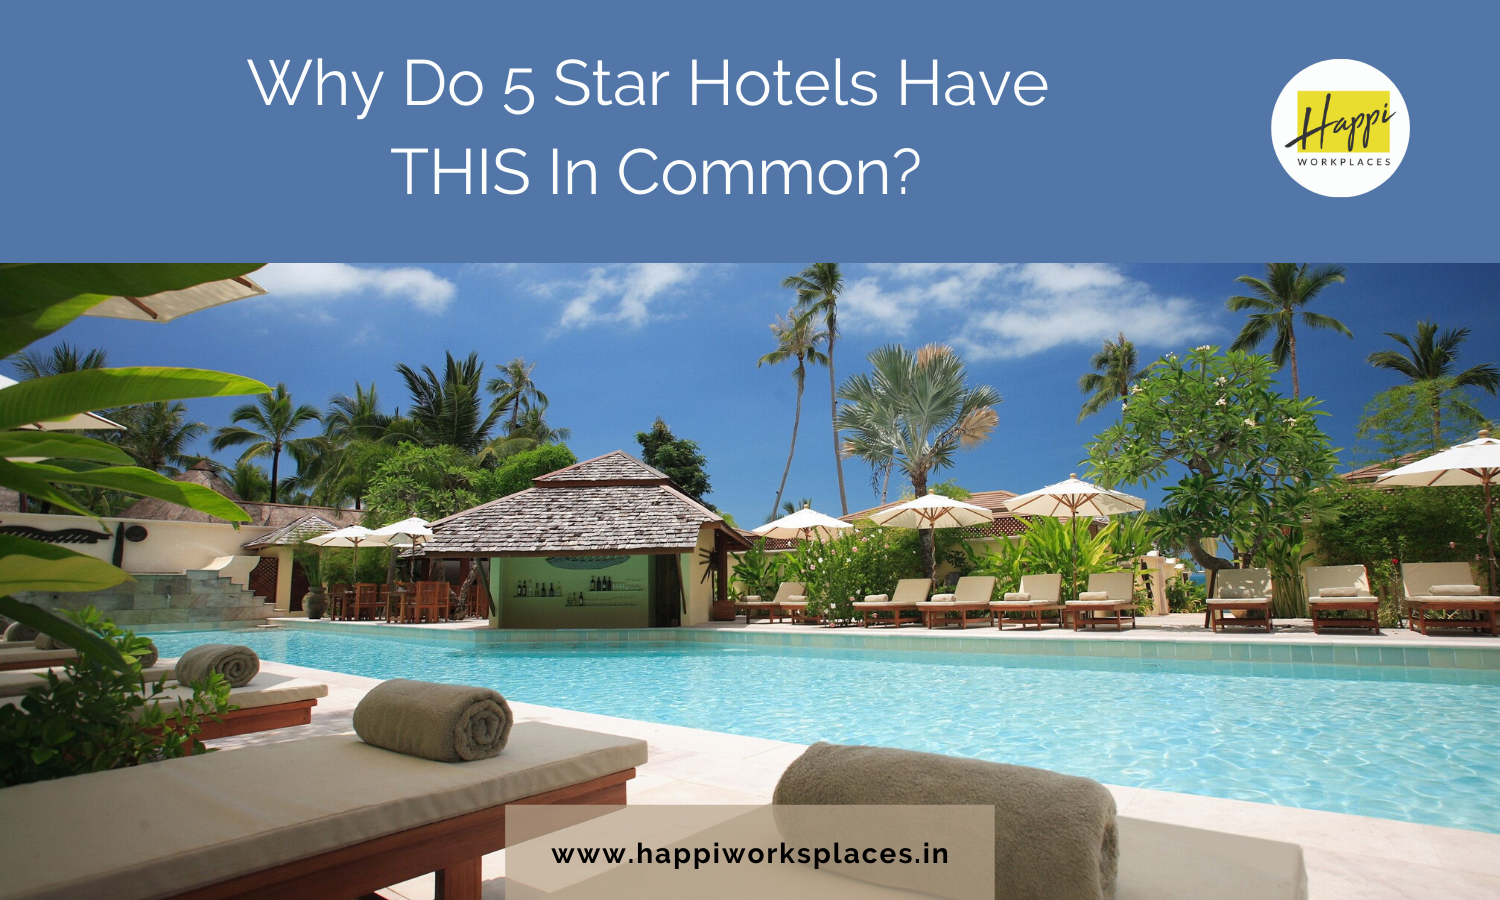 Why Do 5 Star Hotels Have THIS In Common?